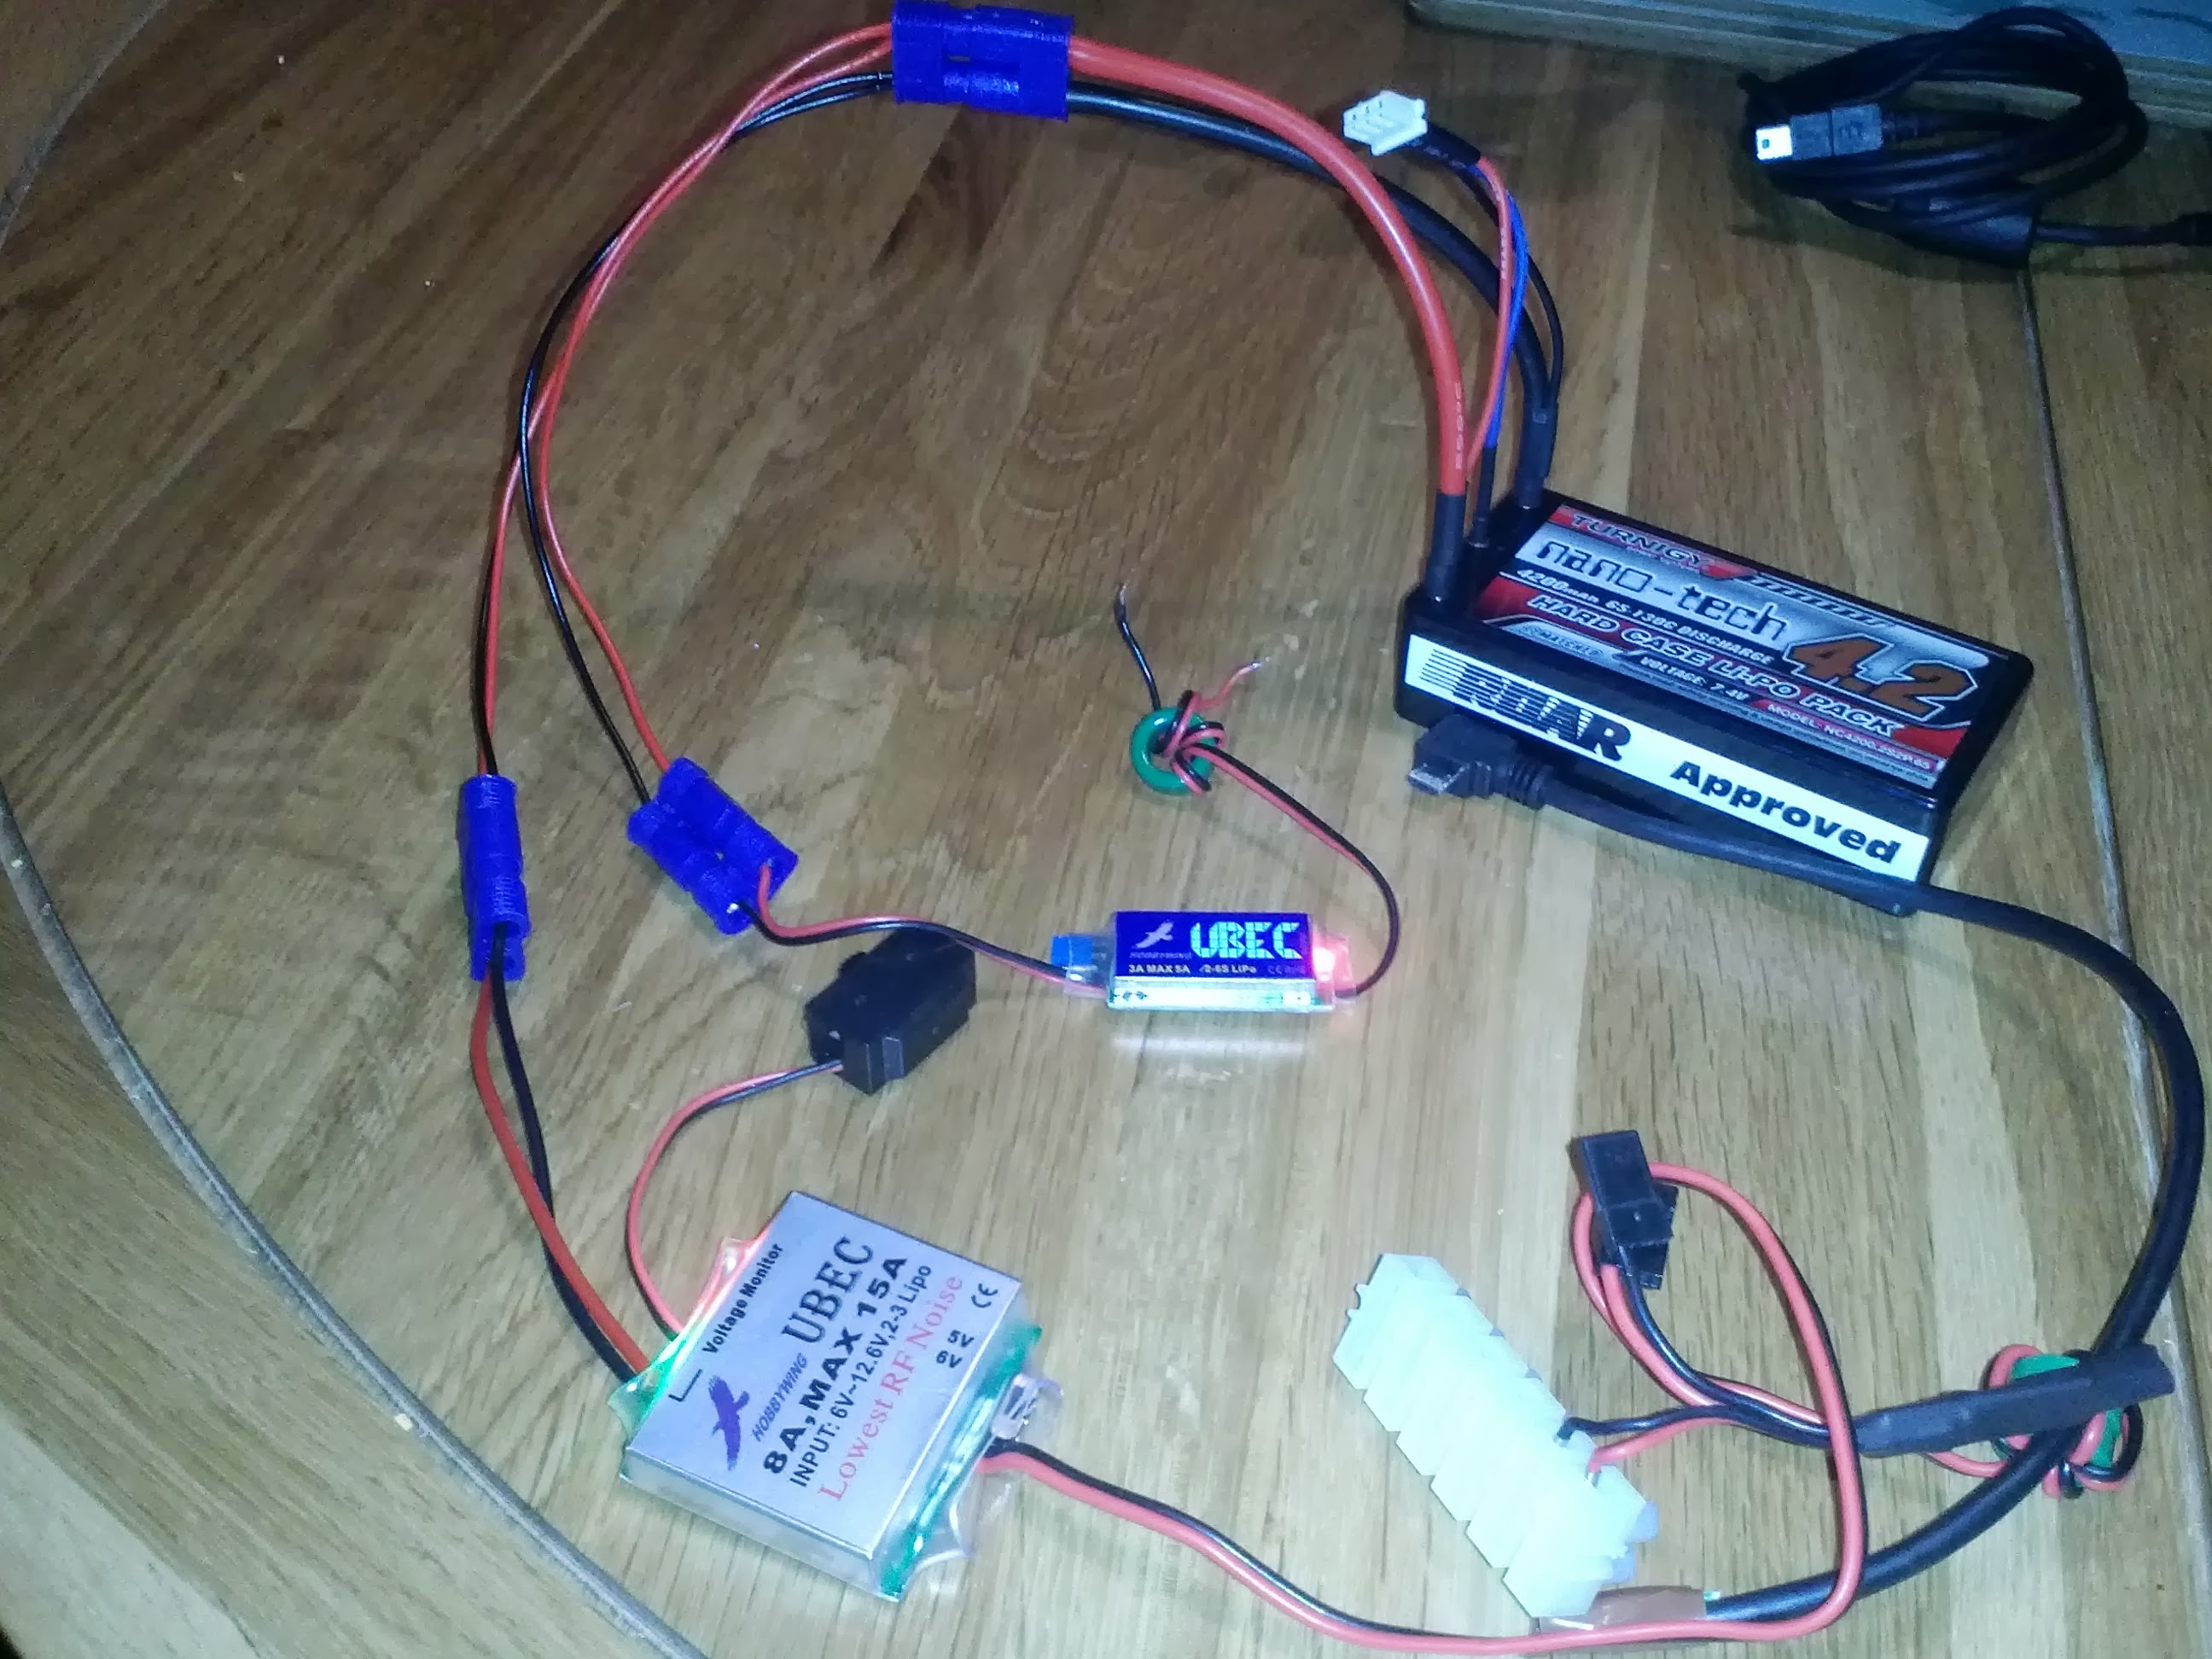 Powering Quadcopter and Pi from lipo - Raspberry Pi Forums on 02 ford 4x4 wiring, s p 1226 switch wiring, 2012 chevy suburban wiring, uav quadcopter controls wiring, rc wiring, delta wiring, hybrid connector wiring, esc wiring, q brain quadcopter wiring, minimosd wiring,